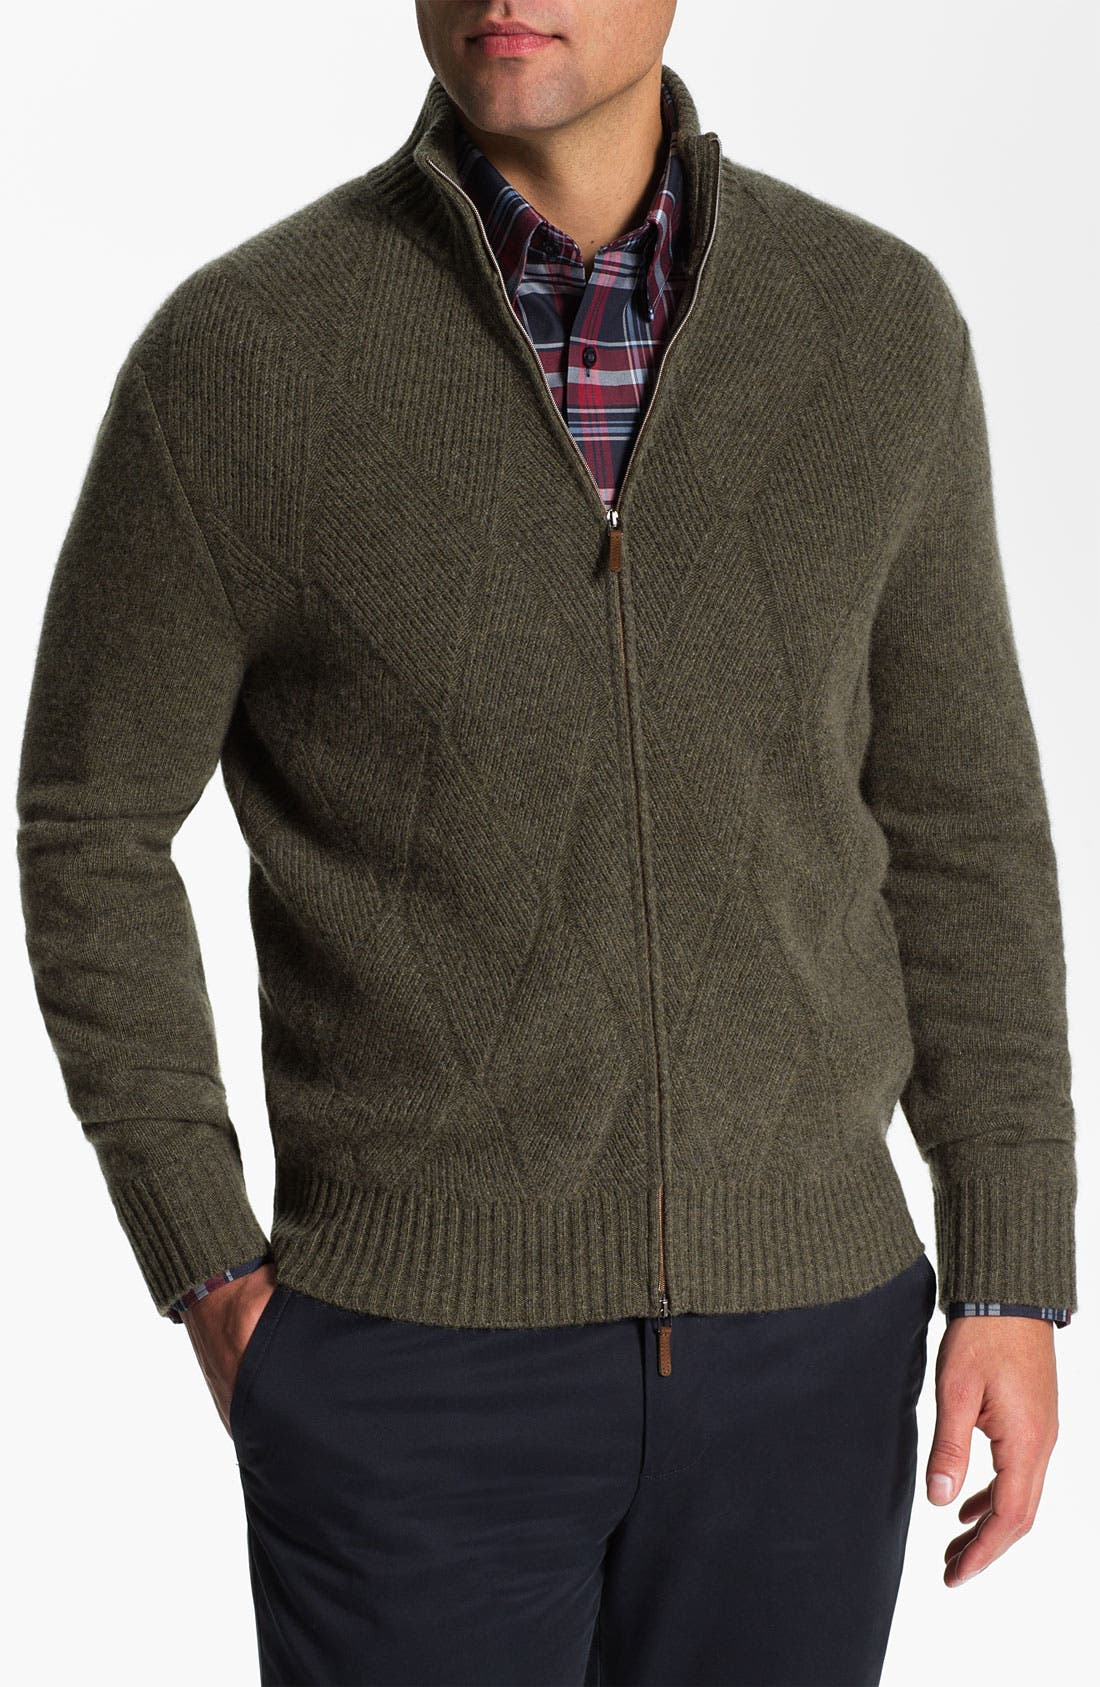 Alternate Image 1 Selected - Lora Gi Wool & Cashmere Zip Cardigan